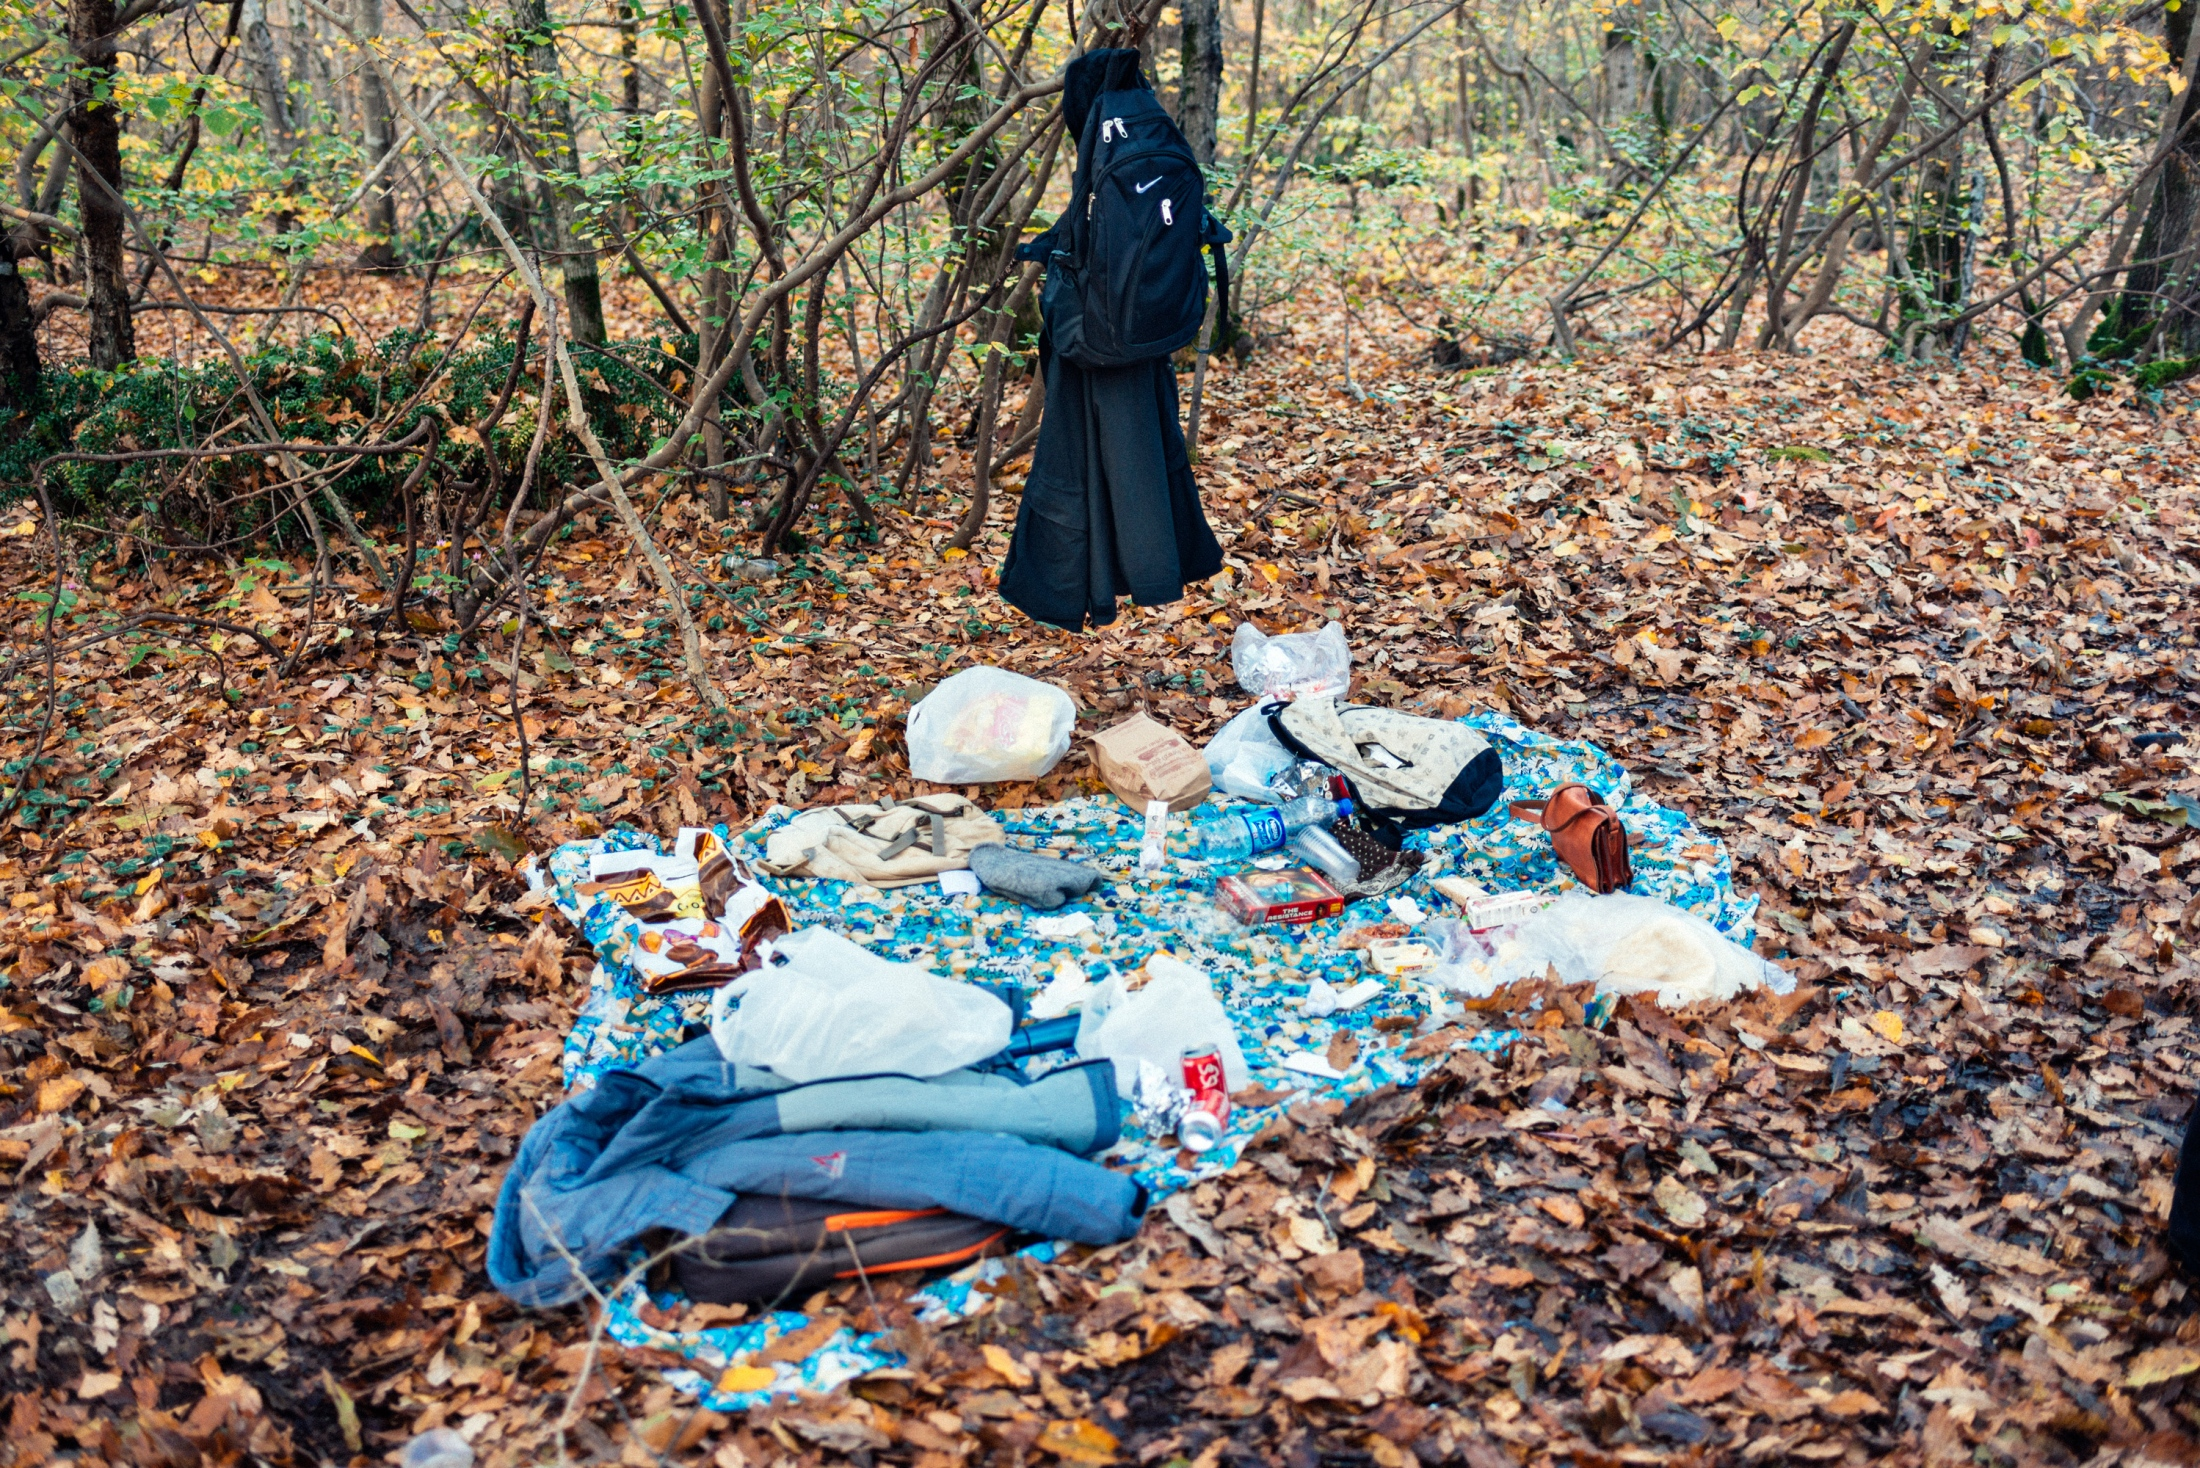 According to Islamic law, any relationship between an unmarried couple is forbidden and therefore punishable by law. Every time we went camping as a group, all the couples would find a safe hideout in order to avoid brushes with the law. This empty picnic reminds me of restriction, fear of persecution, and the lack of public safety. Iran, 2015.